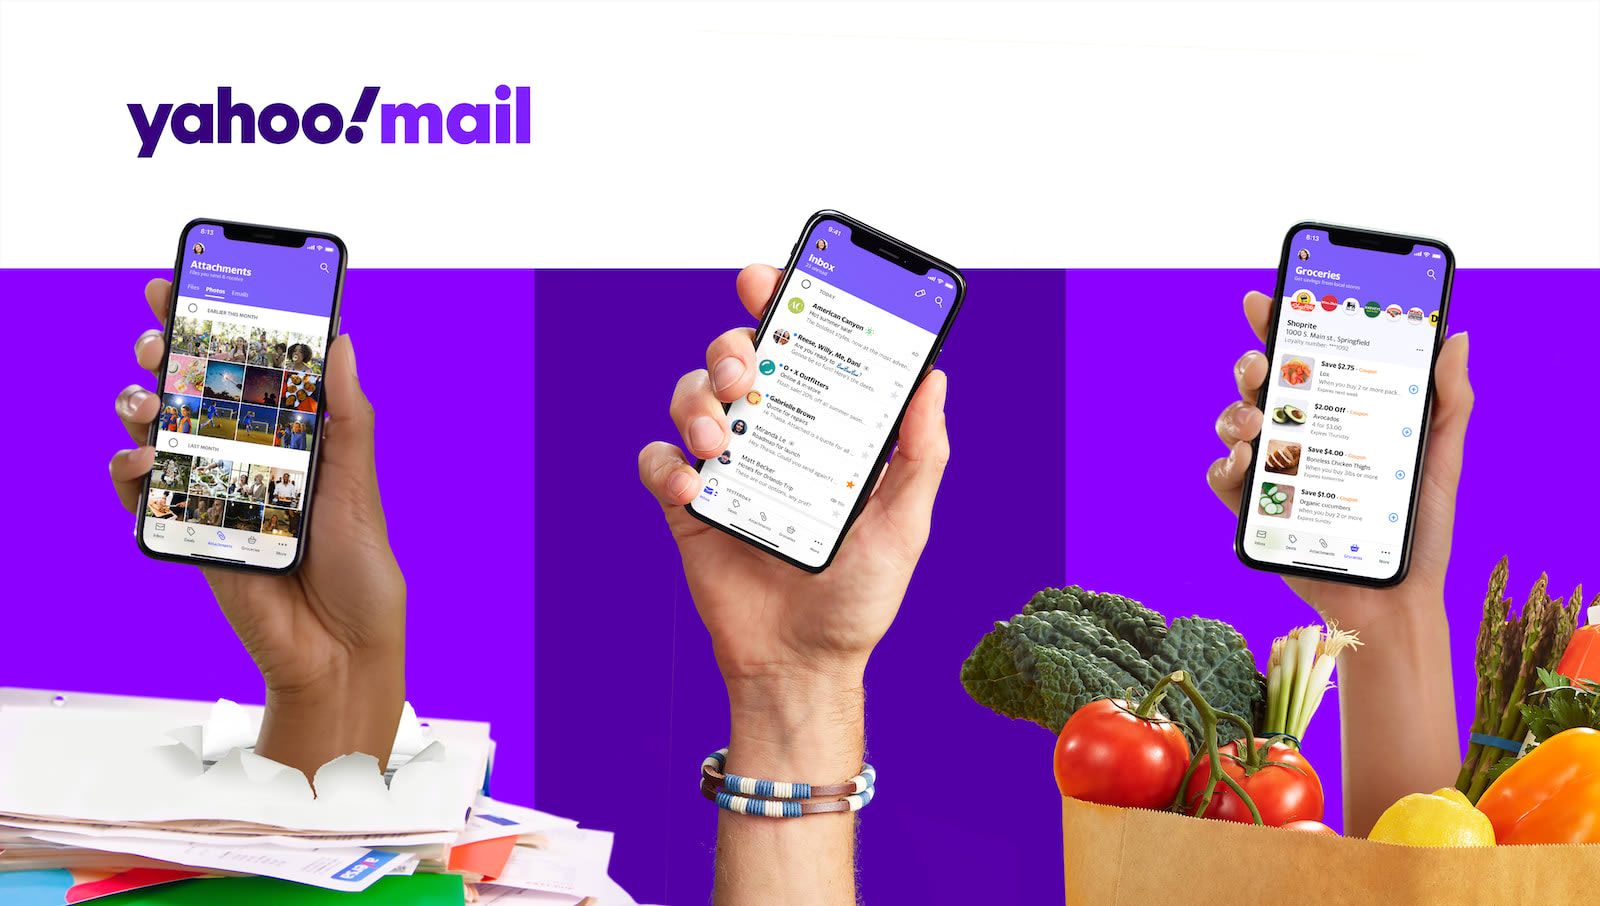 Yahoo's redesigned Mail app aims to bring order to your inbox